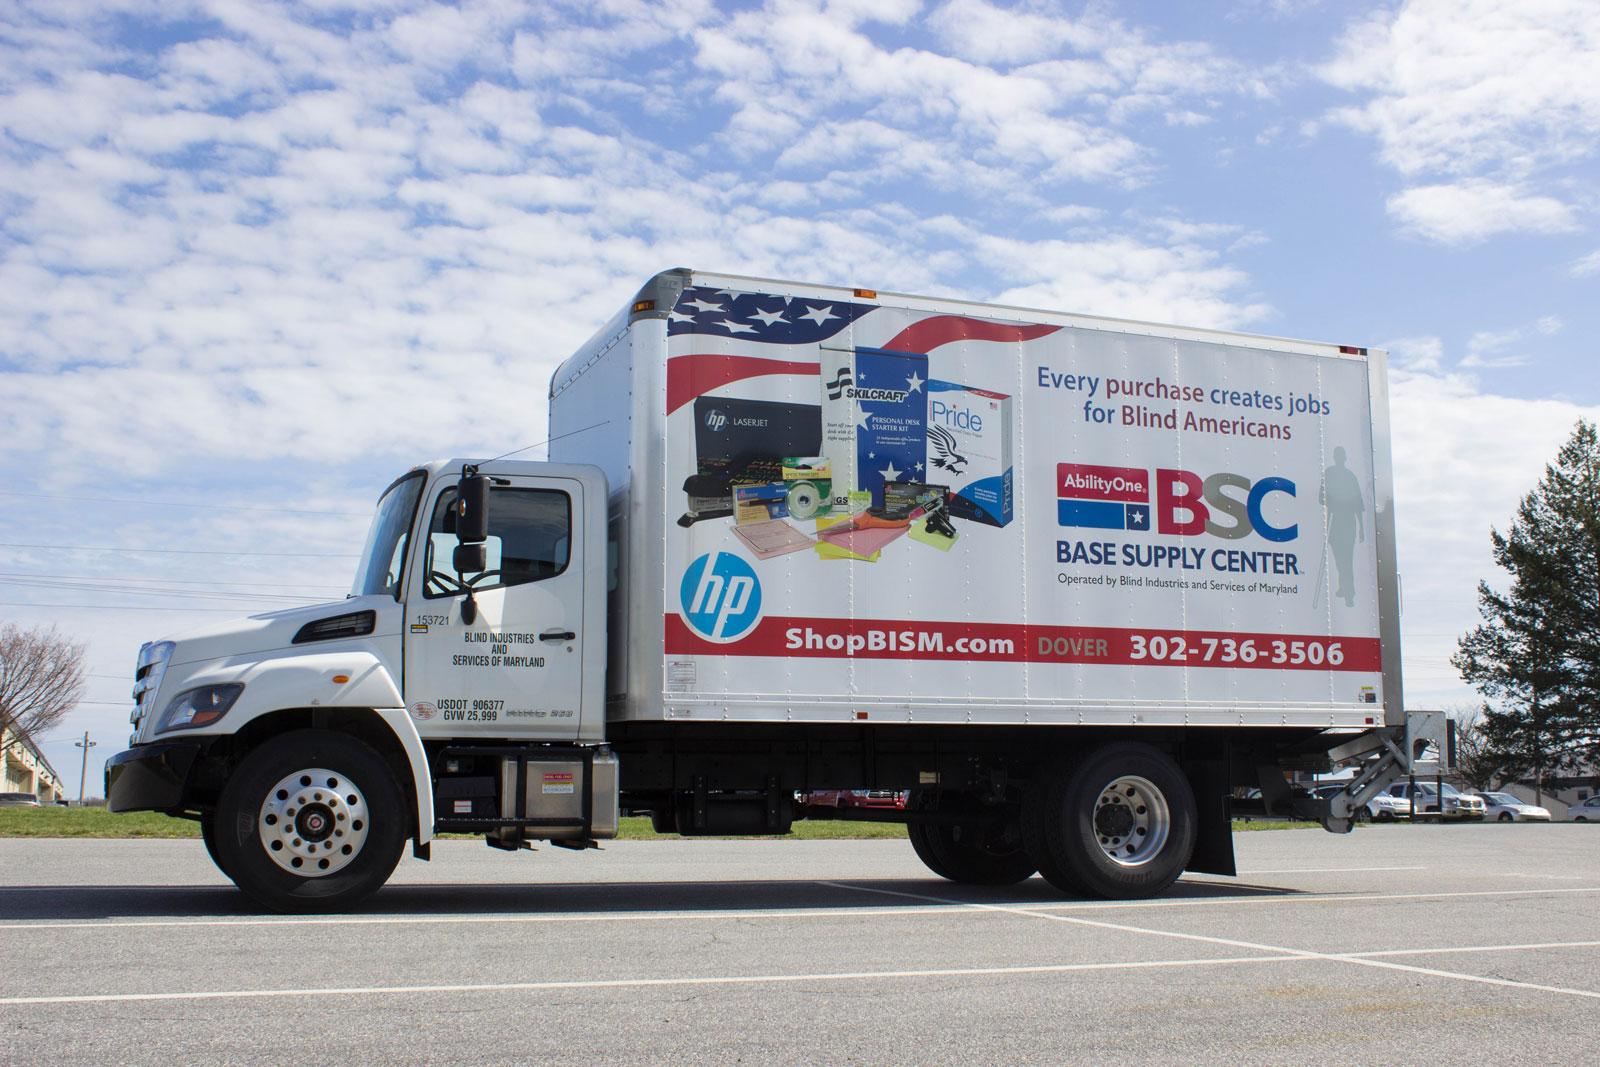 Box truck with BSC logo and product display on side